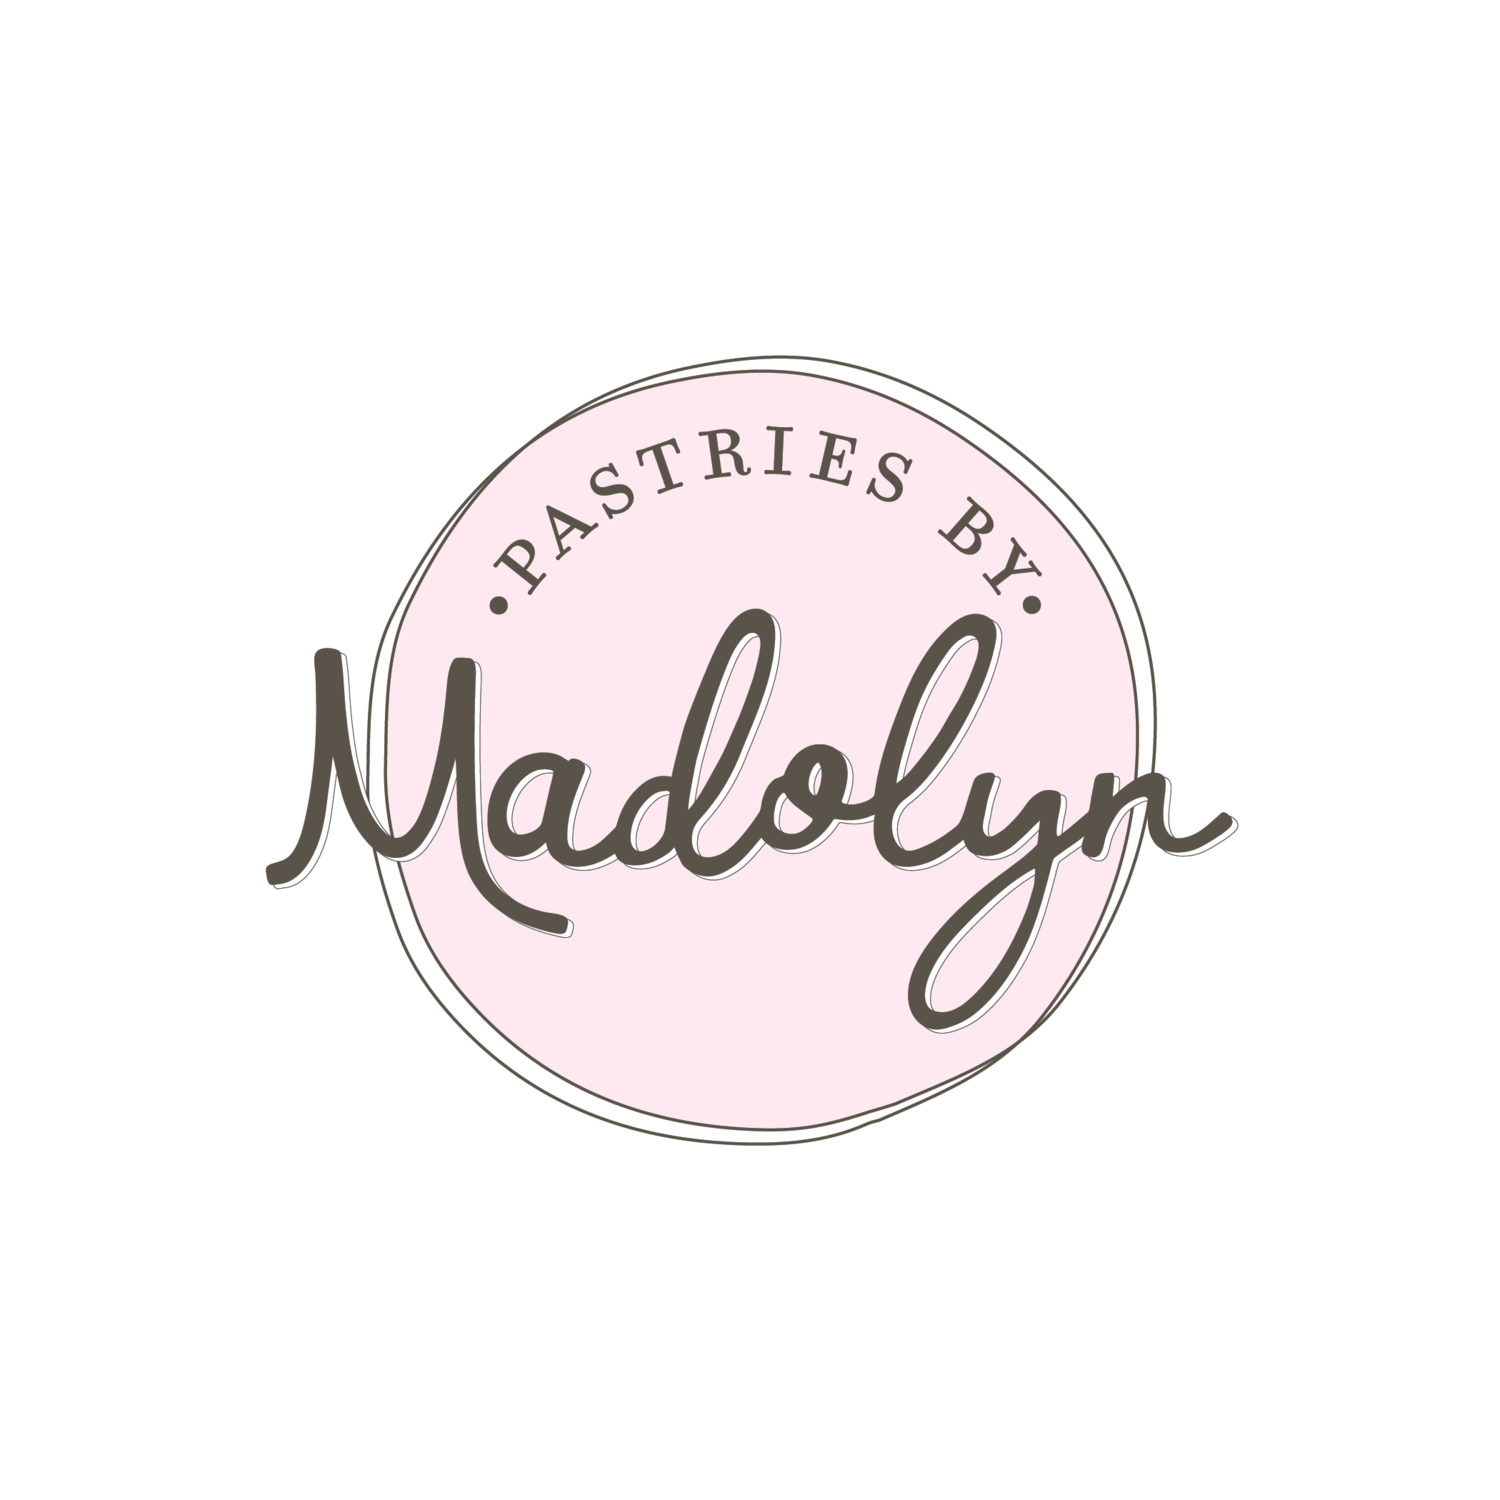 Pastries by Madolyn